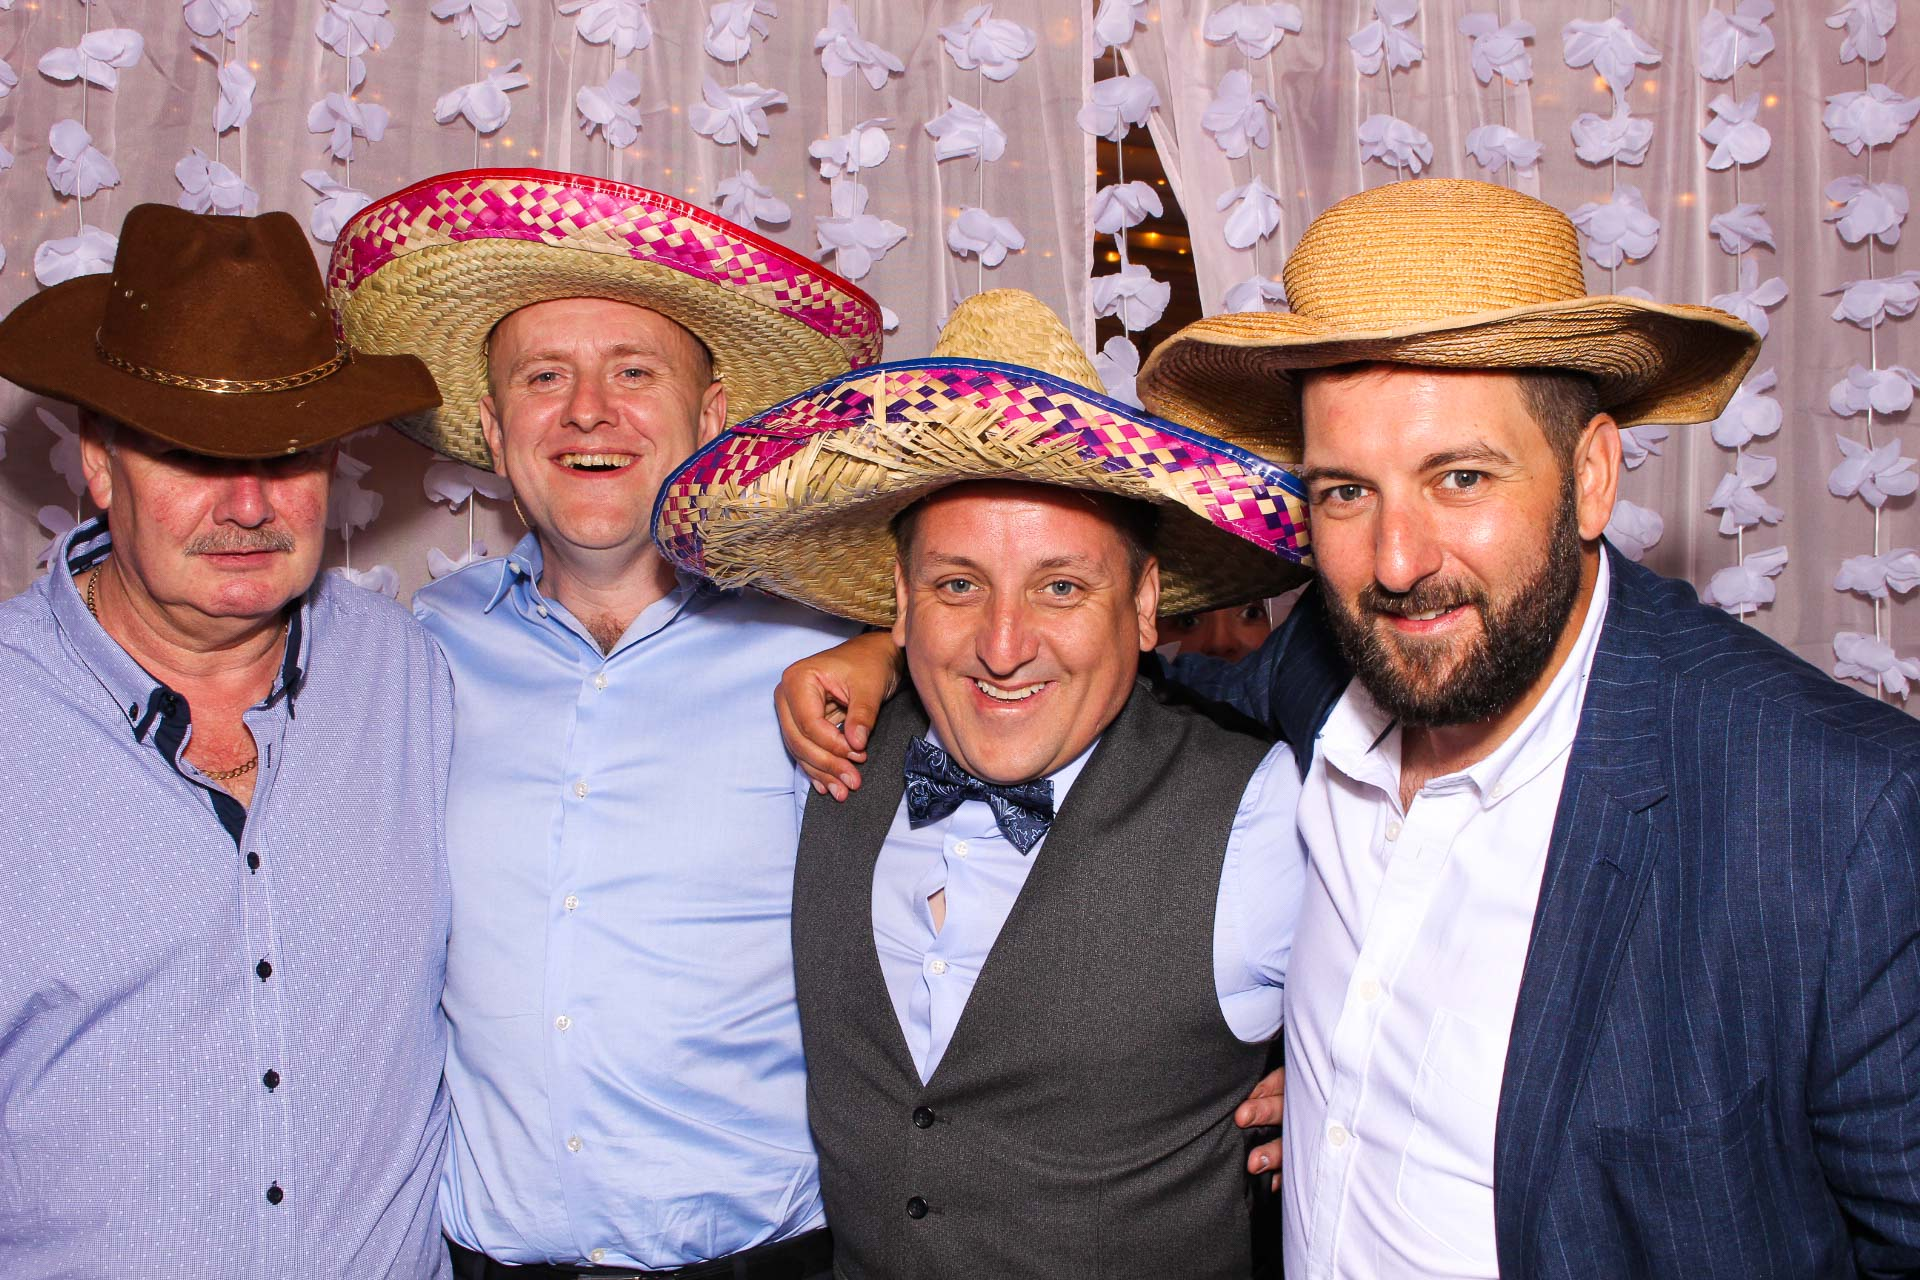 fotoauto photo booth hire-58.jpg